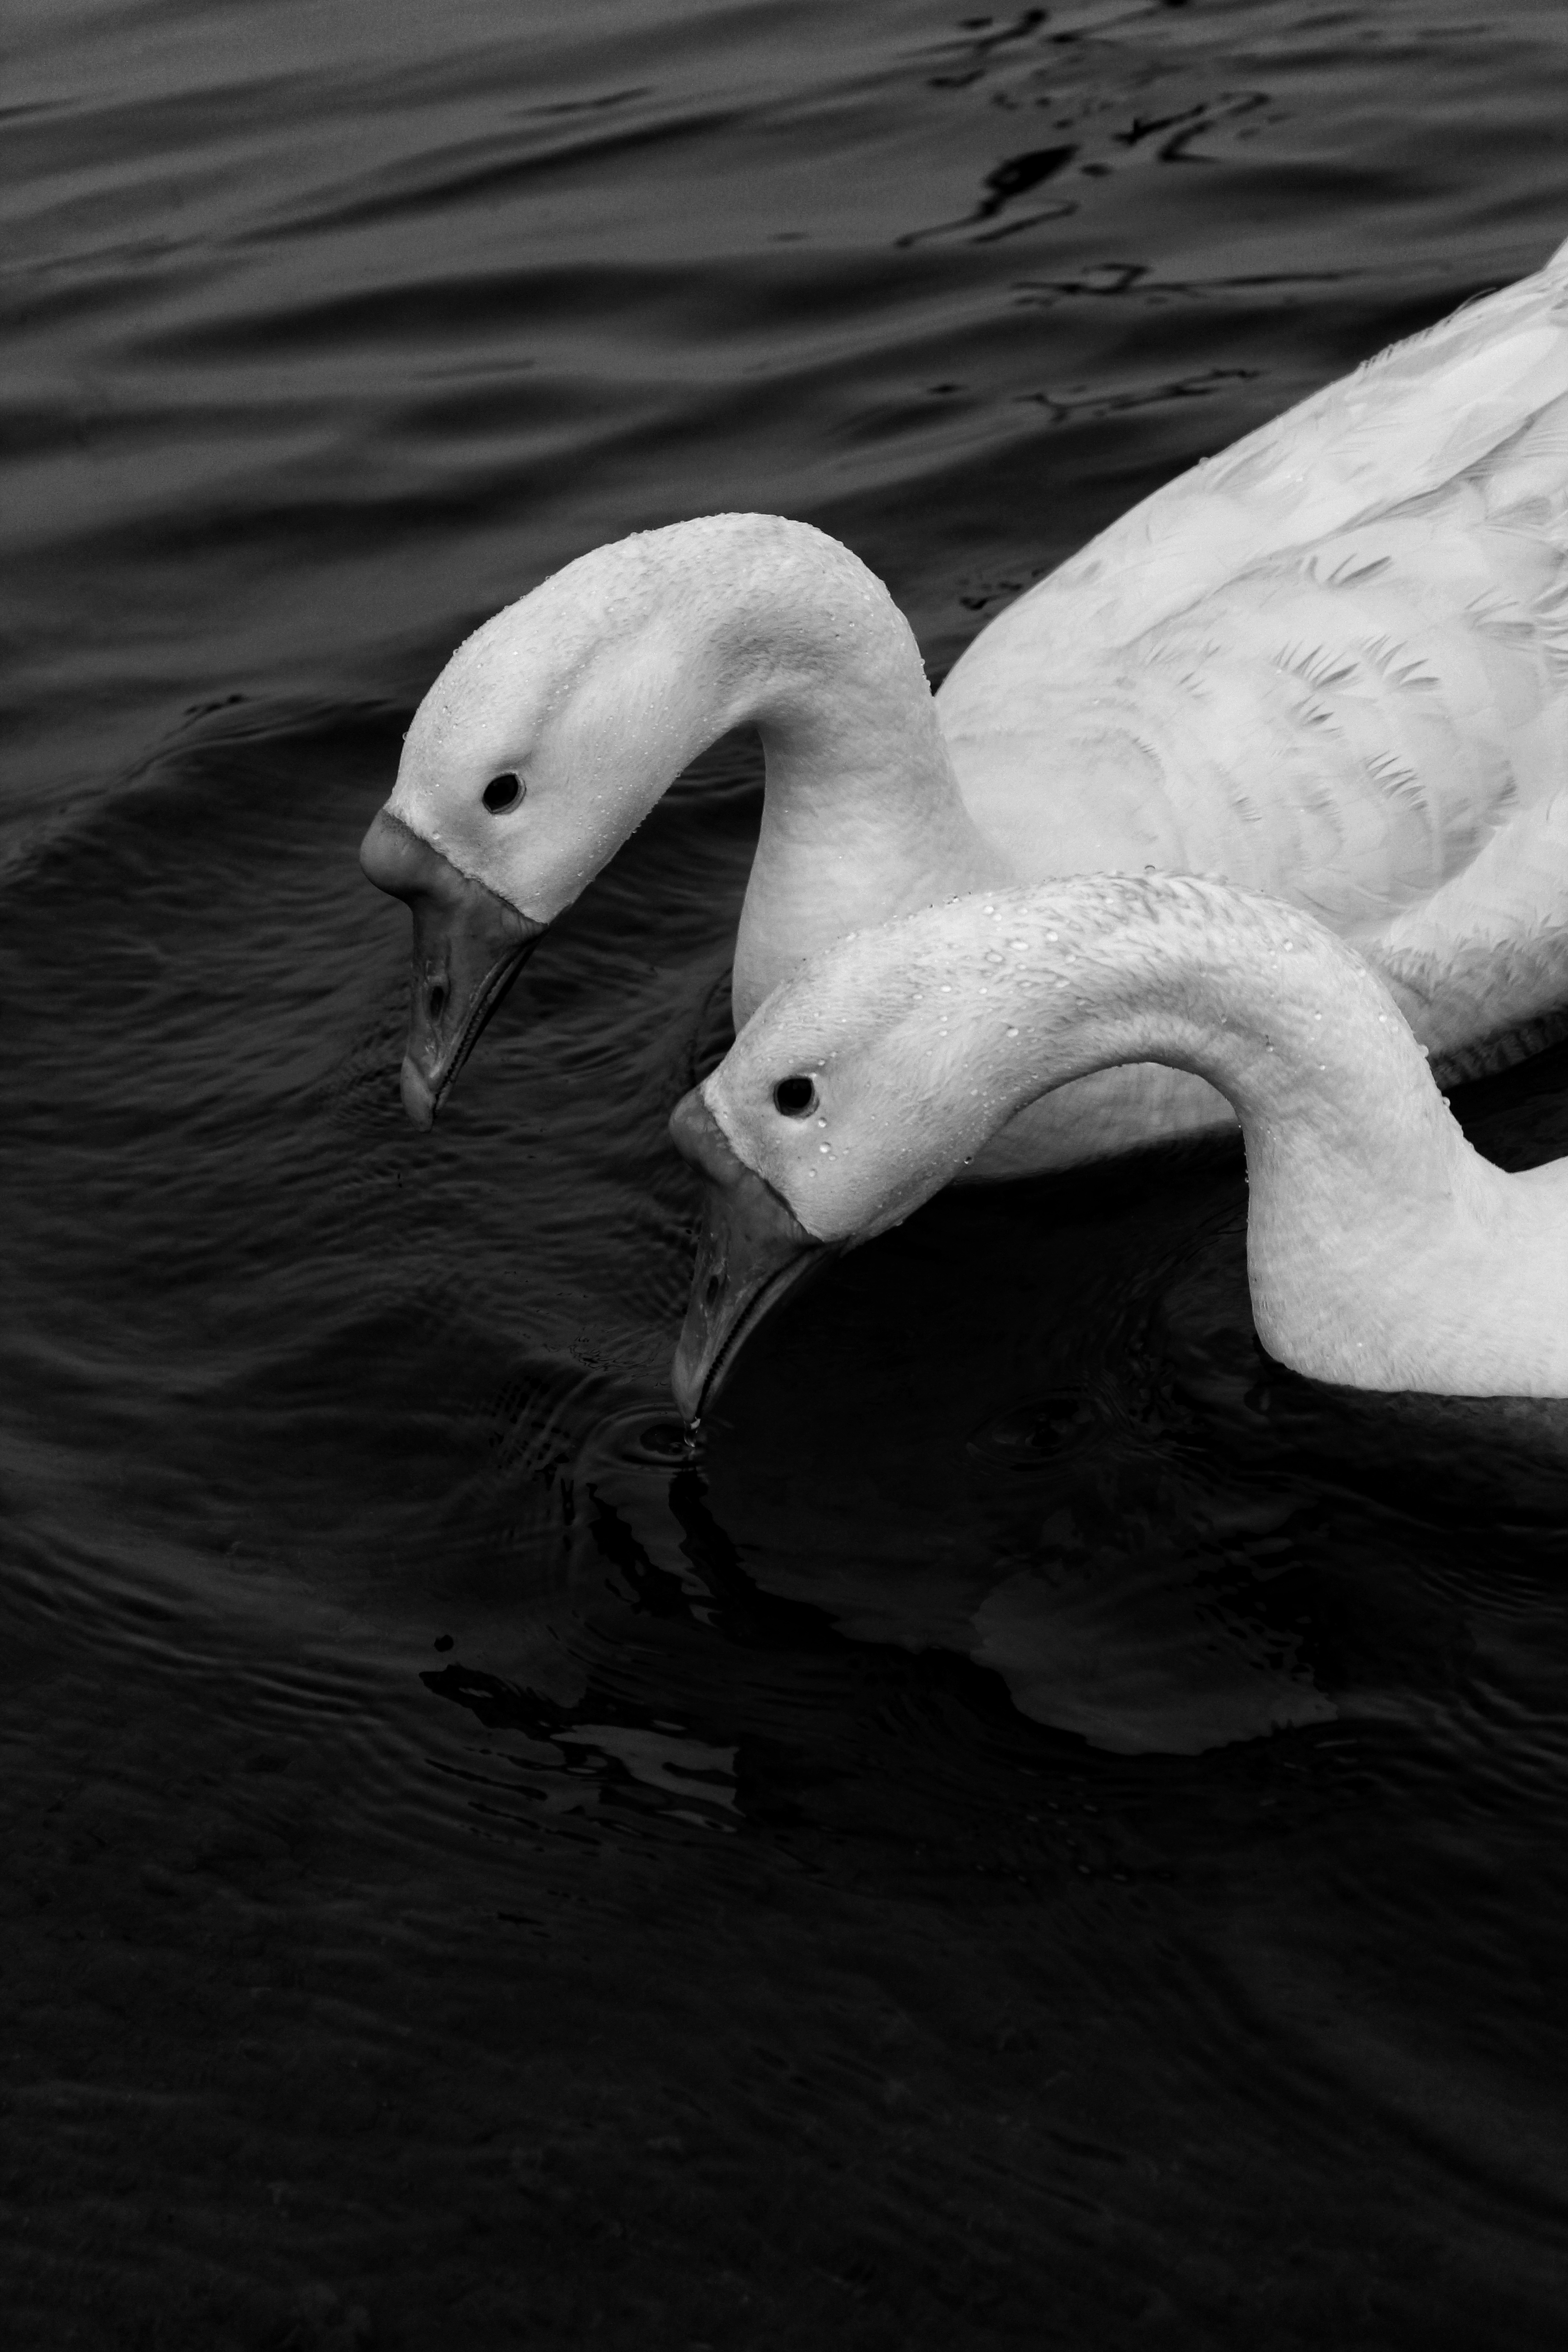 Close-up Grayscale Photo of Two Swans on Water